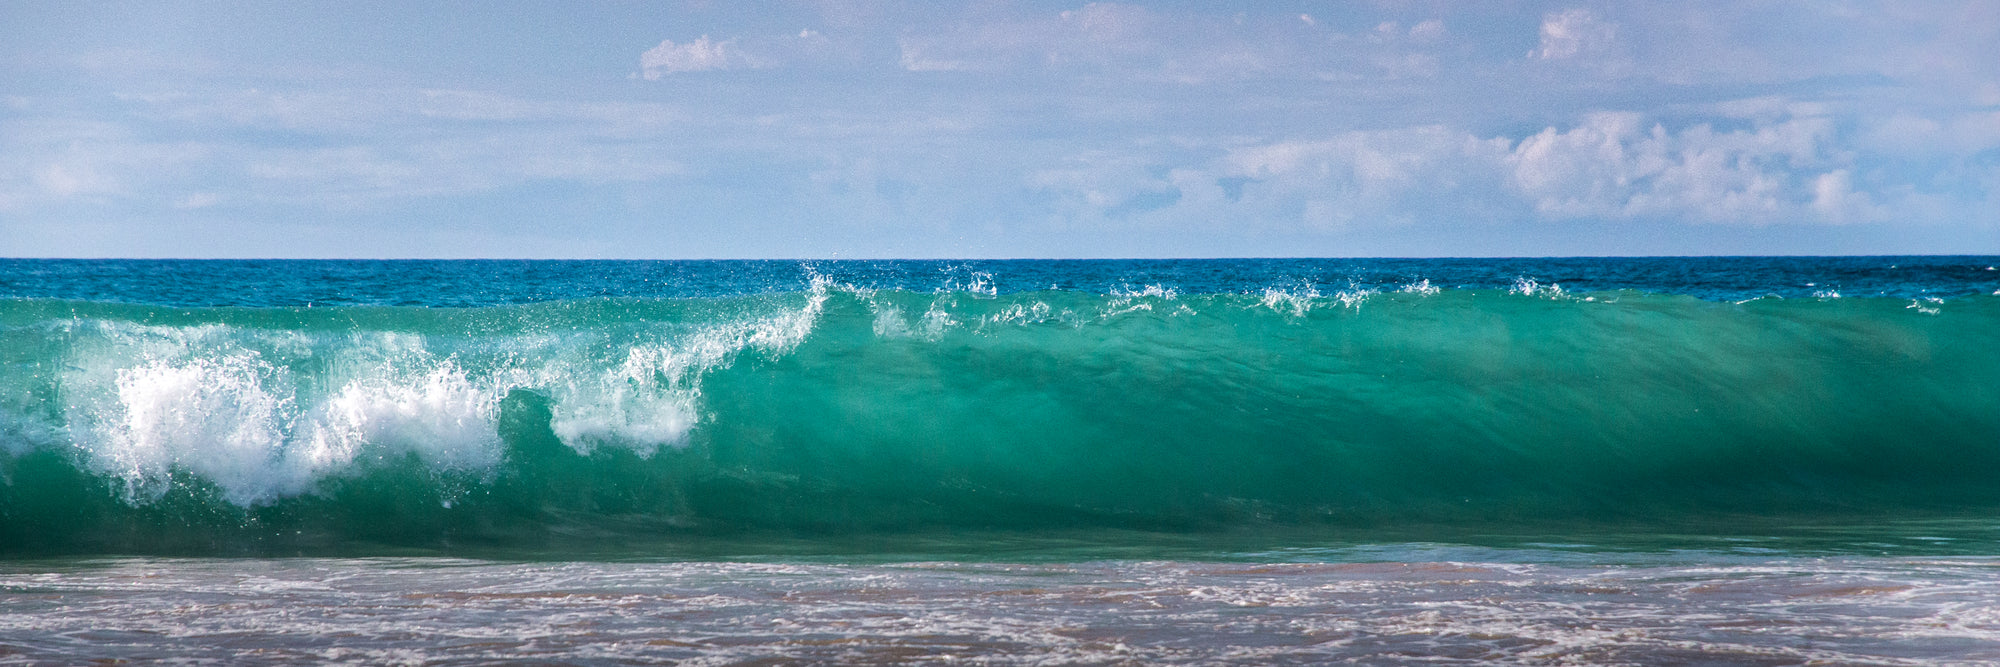 Hawaii Wave 1 Pano (0140)